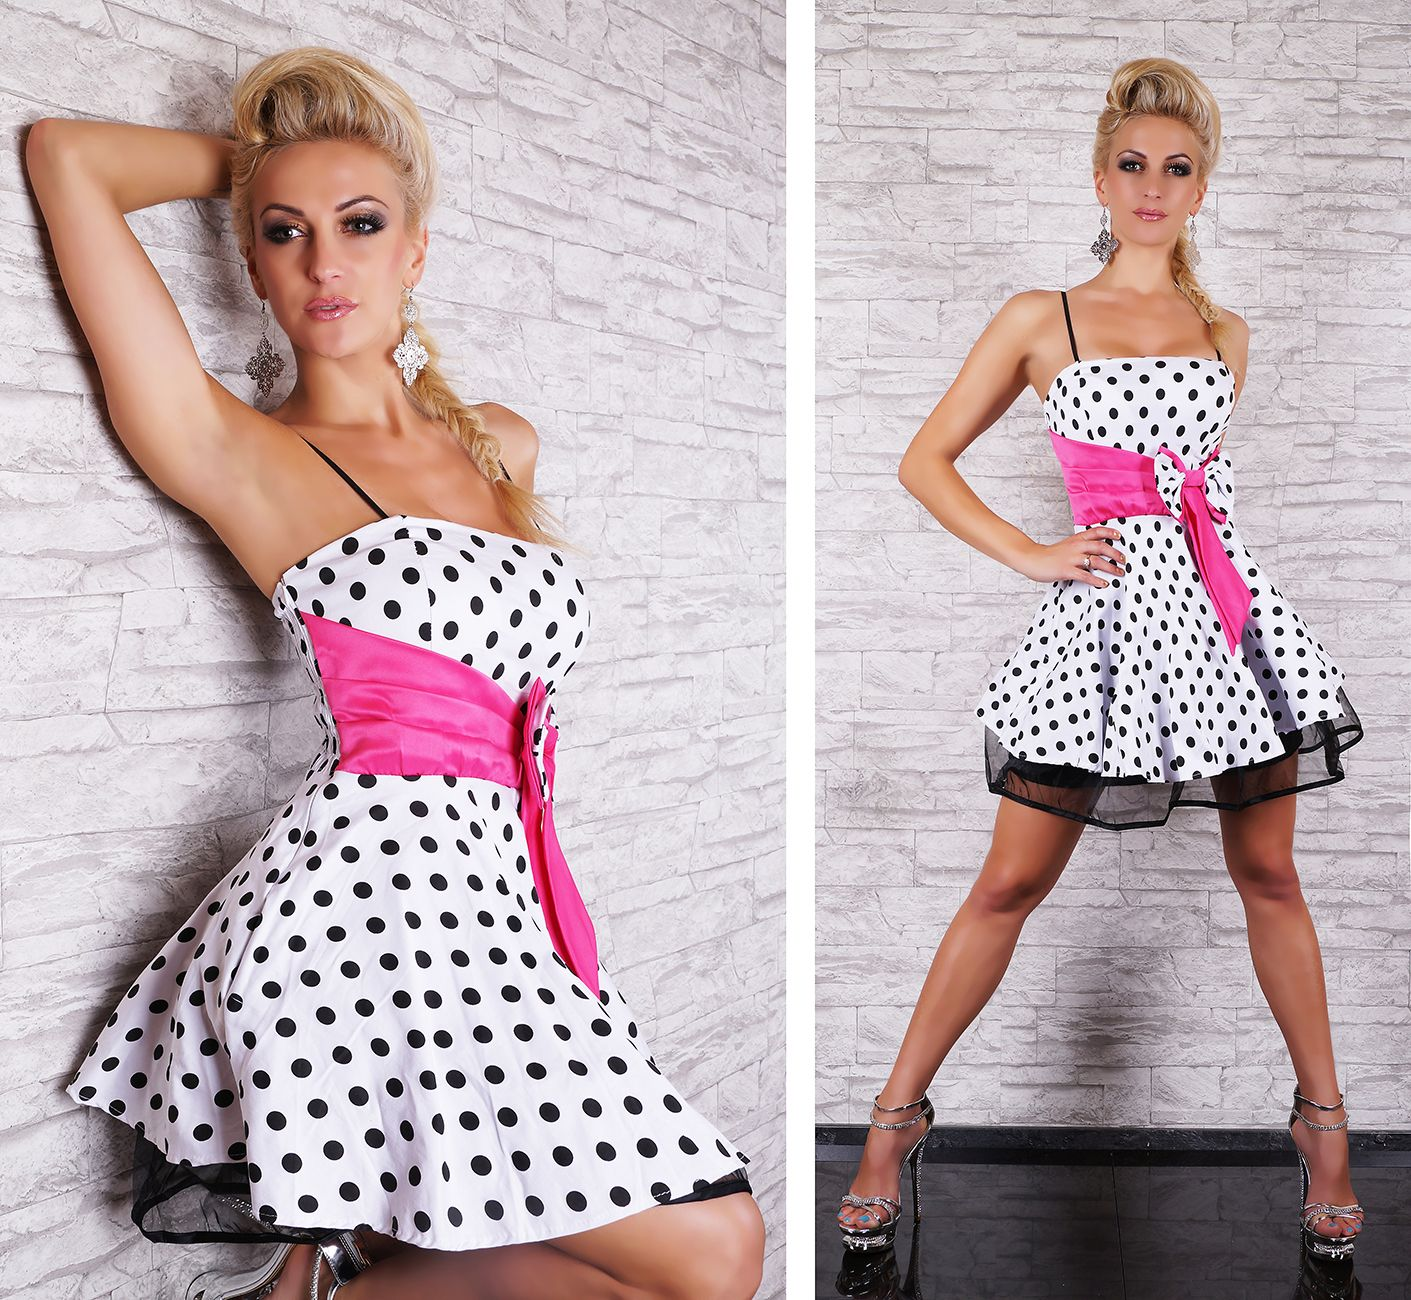 Damen petticoat kleid rockabilly 50er dress punkte schleife unterrock t ll 34 38 ebay - Rockabilly outfit damen ...